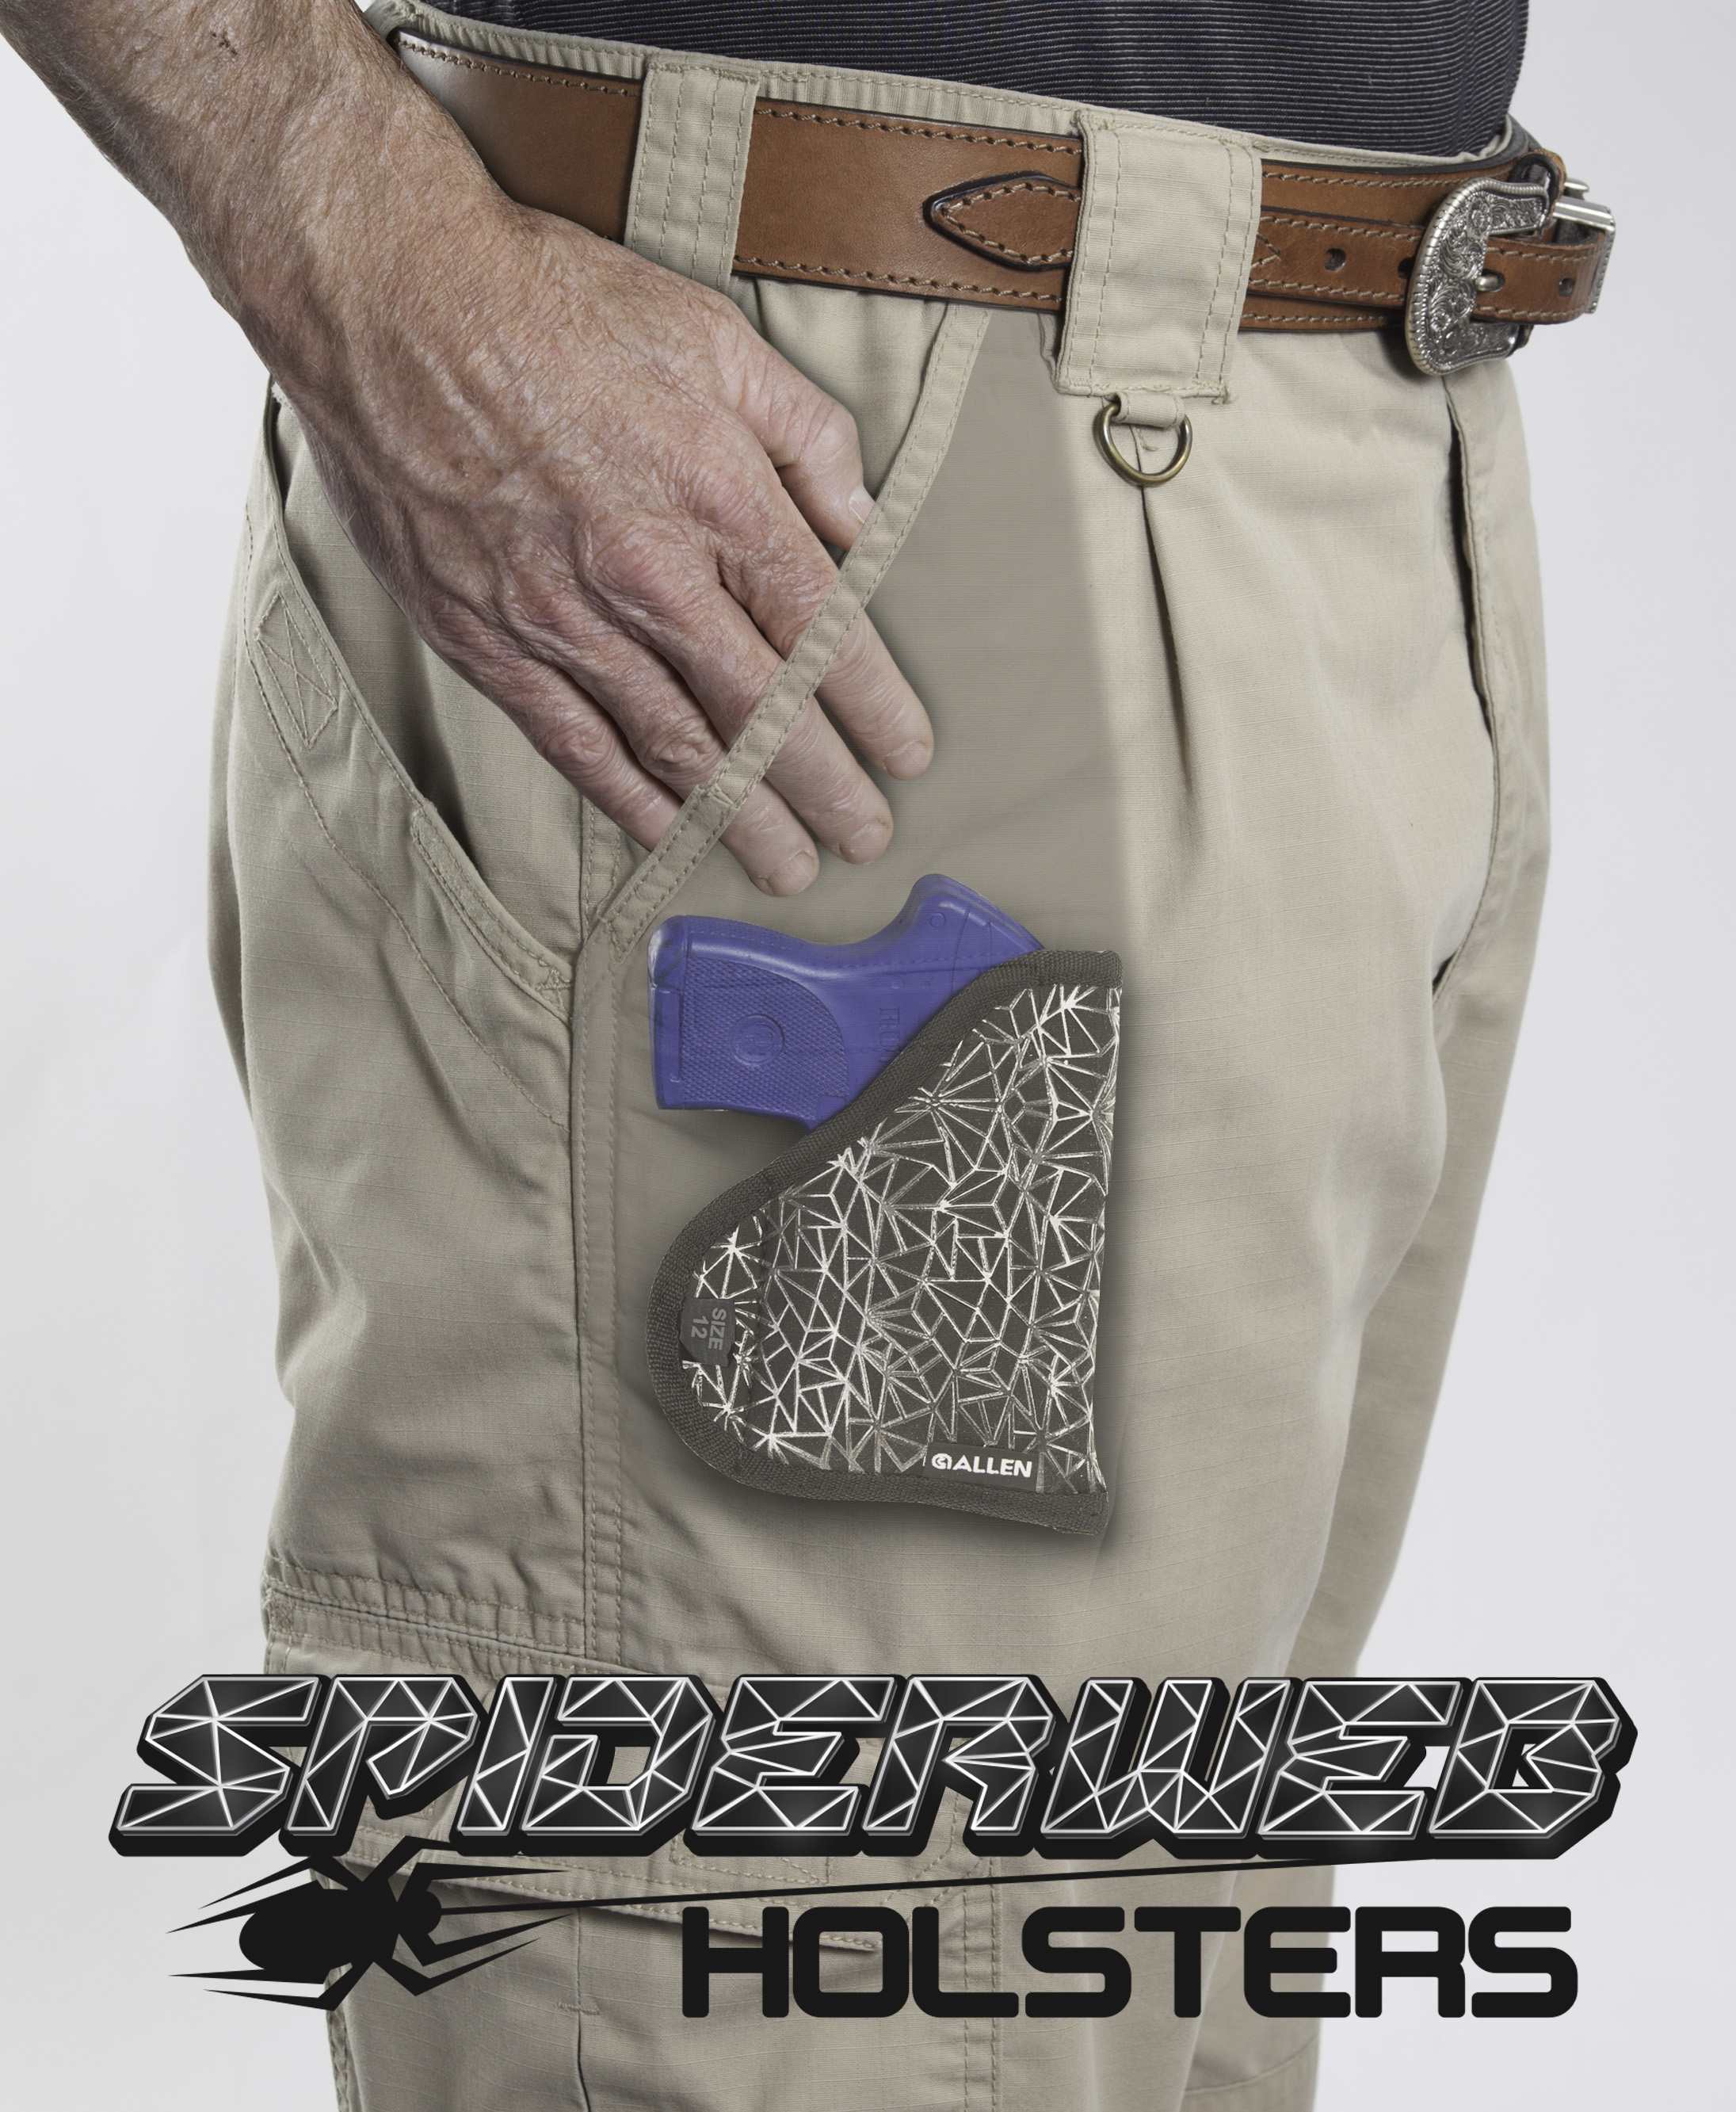 allen company expands concealed carry with spiderweb holster newswire